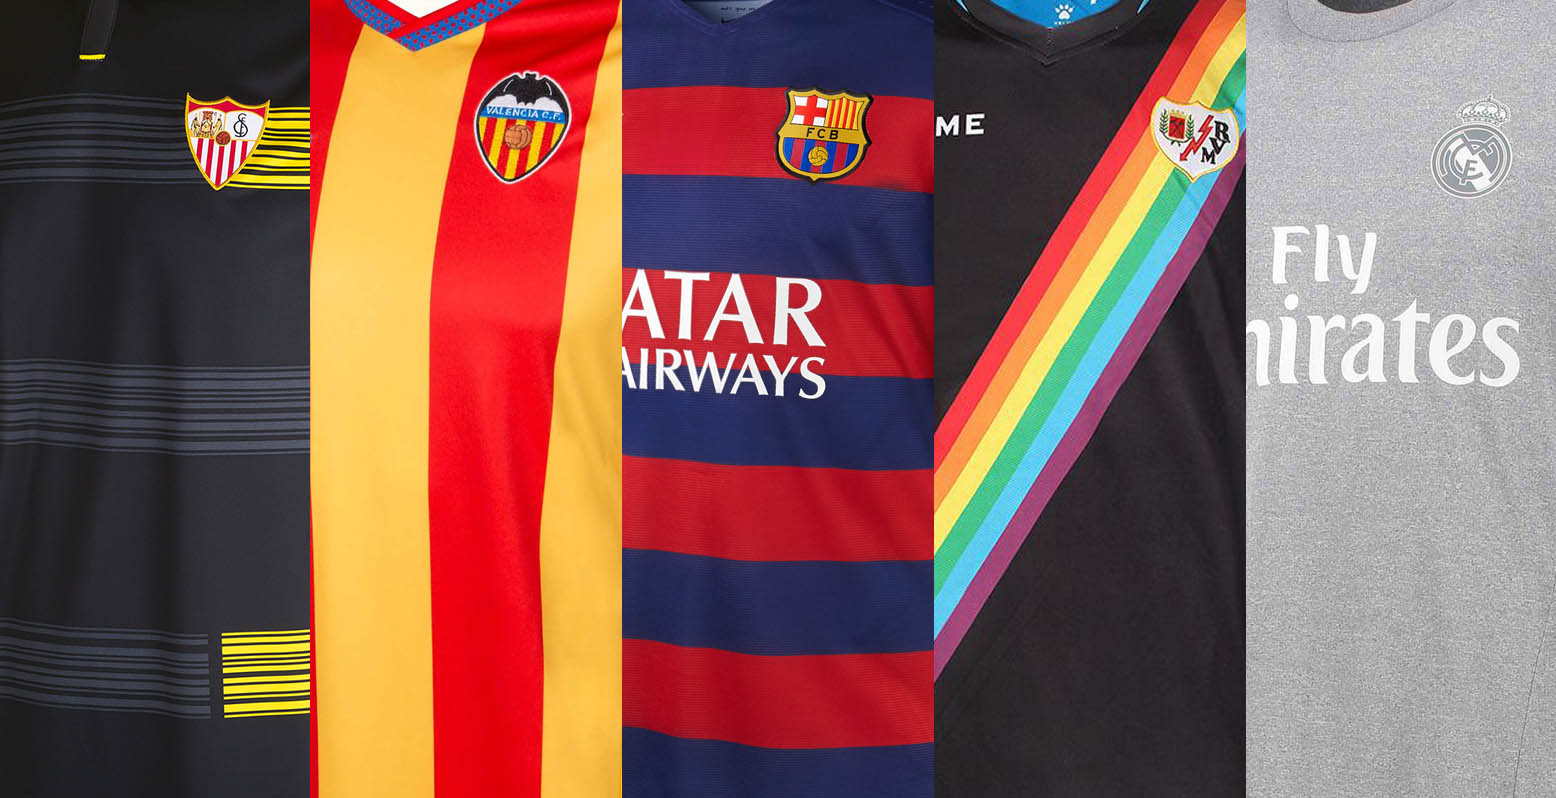 Spain la liga table standing 2016 2017 - 2015 16 La Liga Kits Special All 15 16 Liga Bbva Shirts In Pictures Footy Headlines